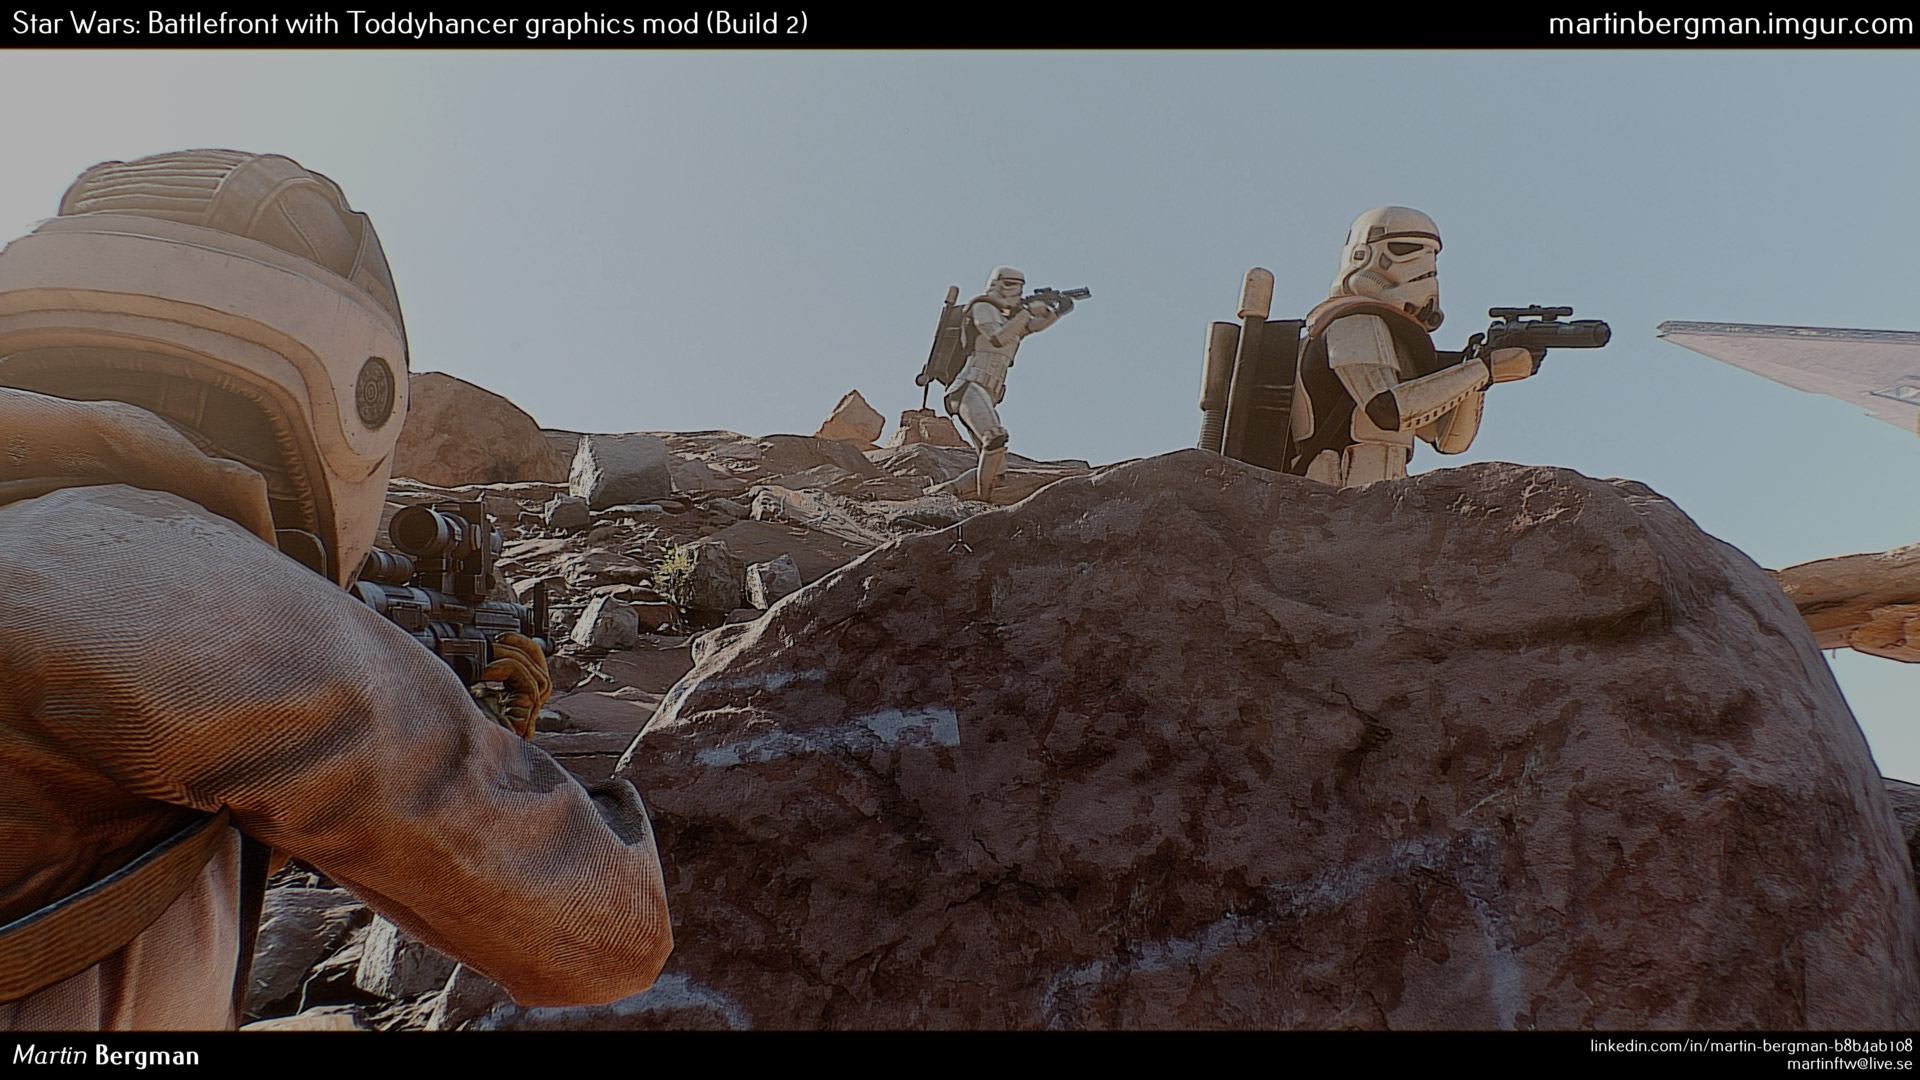 Realistic Star Wars Battlefront